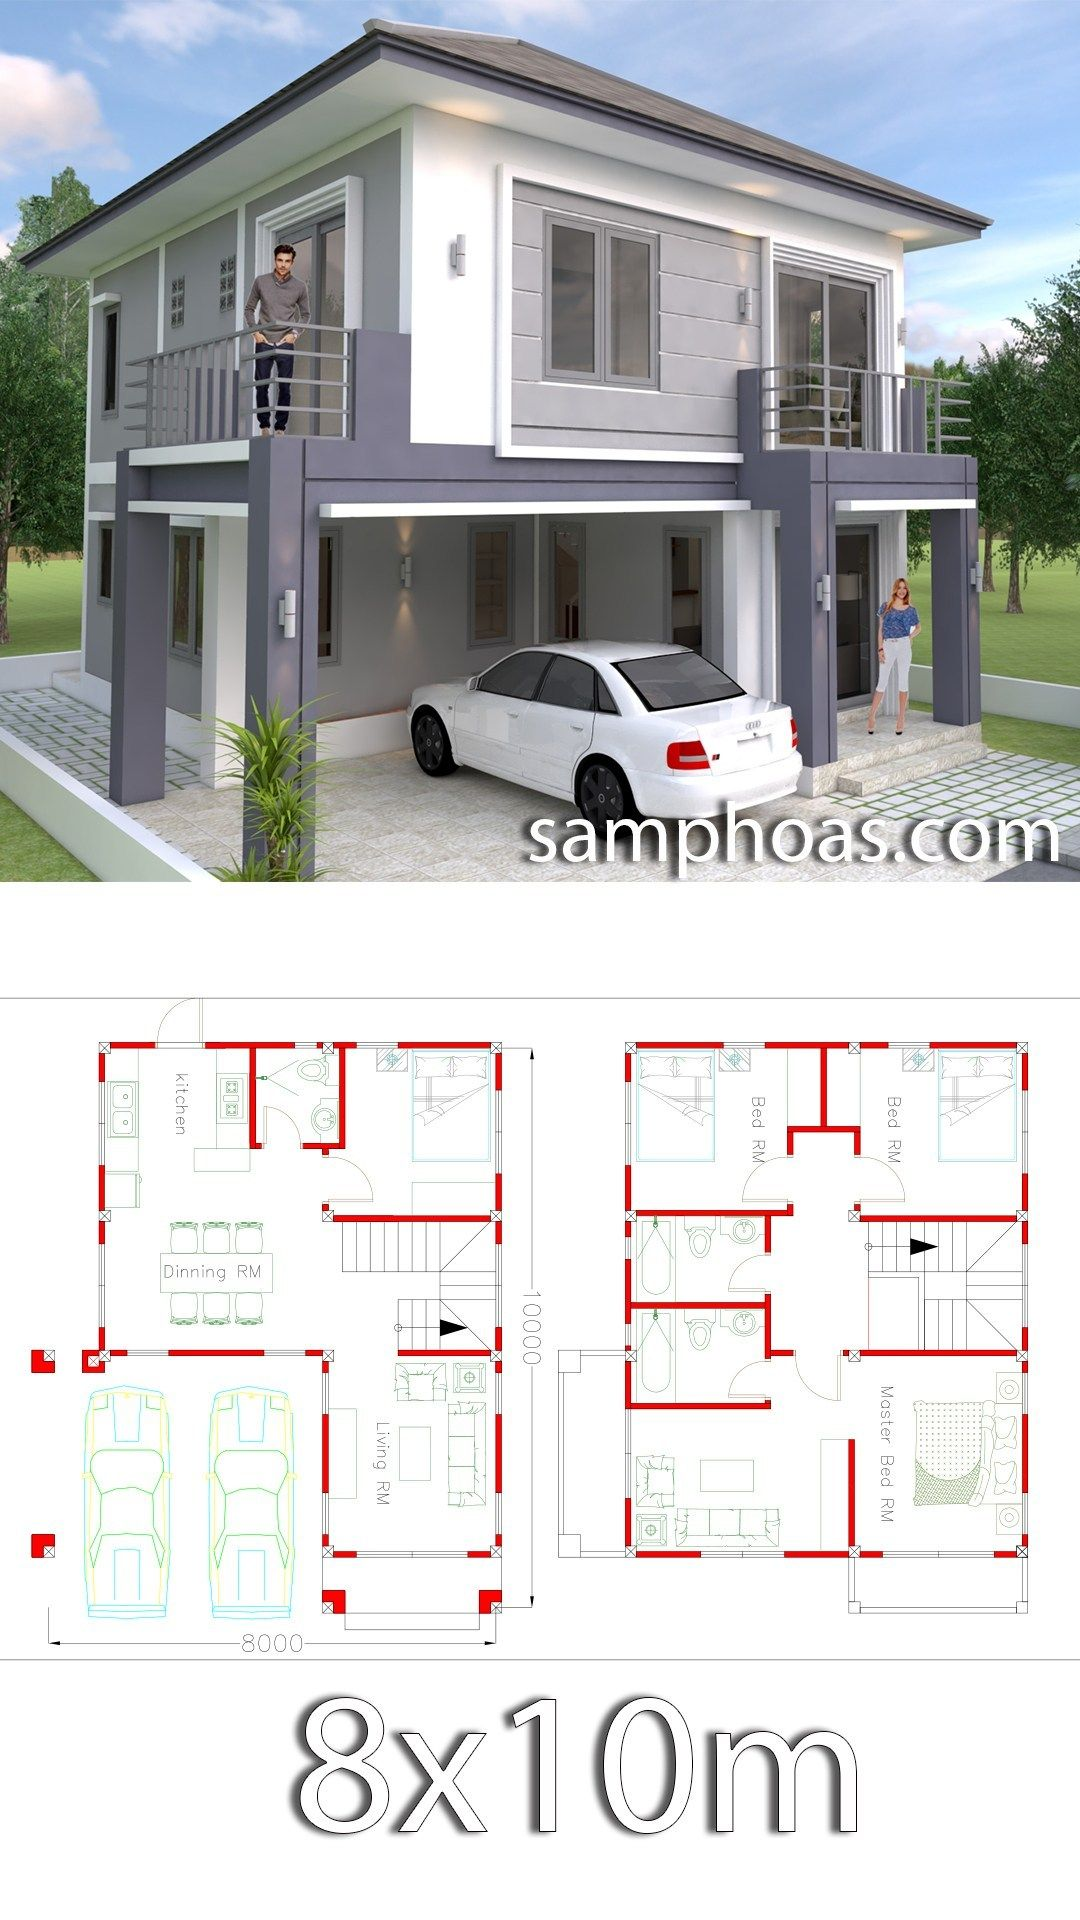 Pin by Javad Abdoljabar on Tiny house plans in 2020 ...